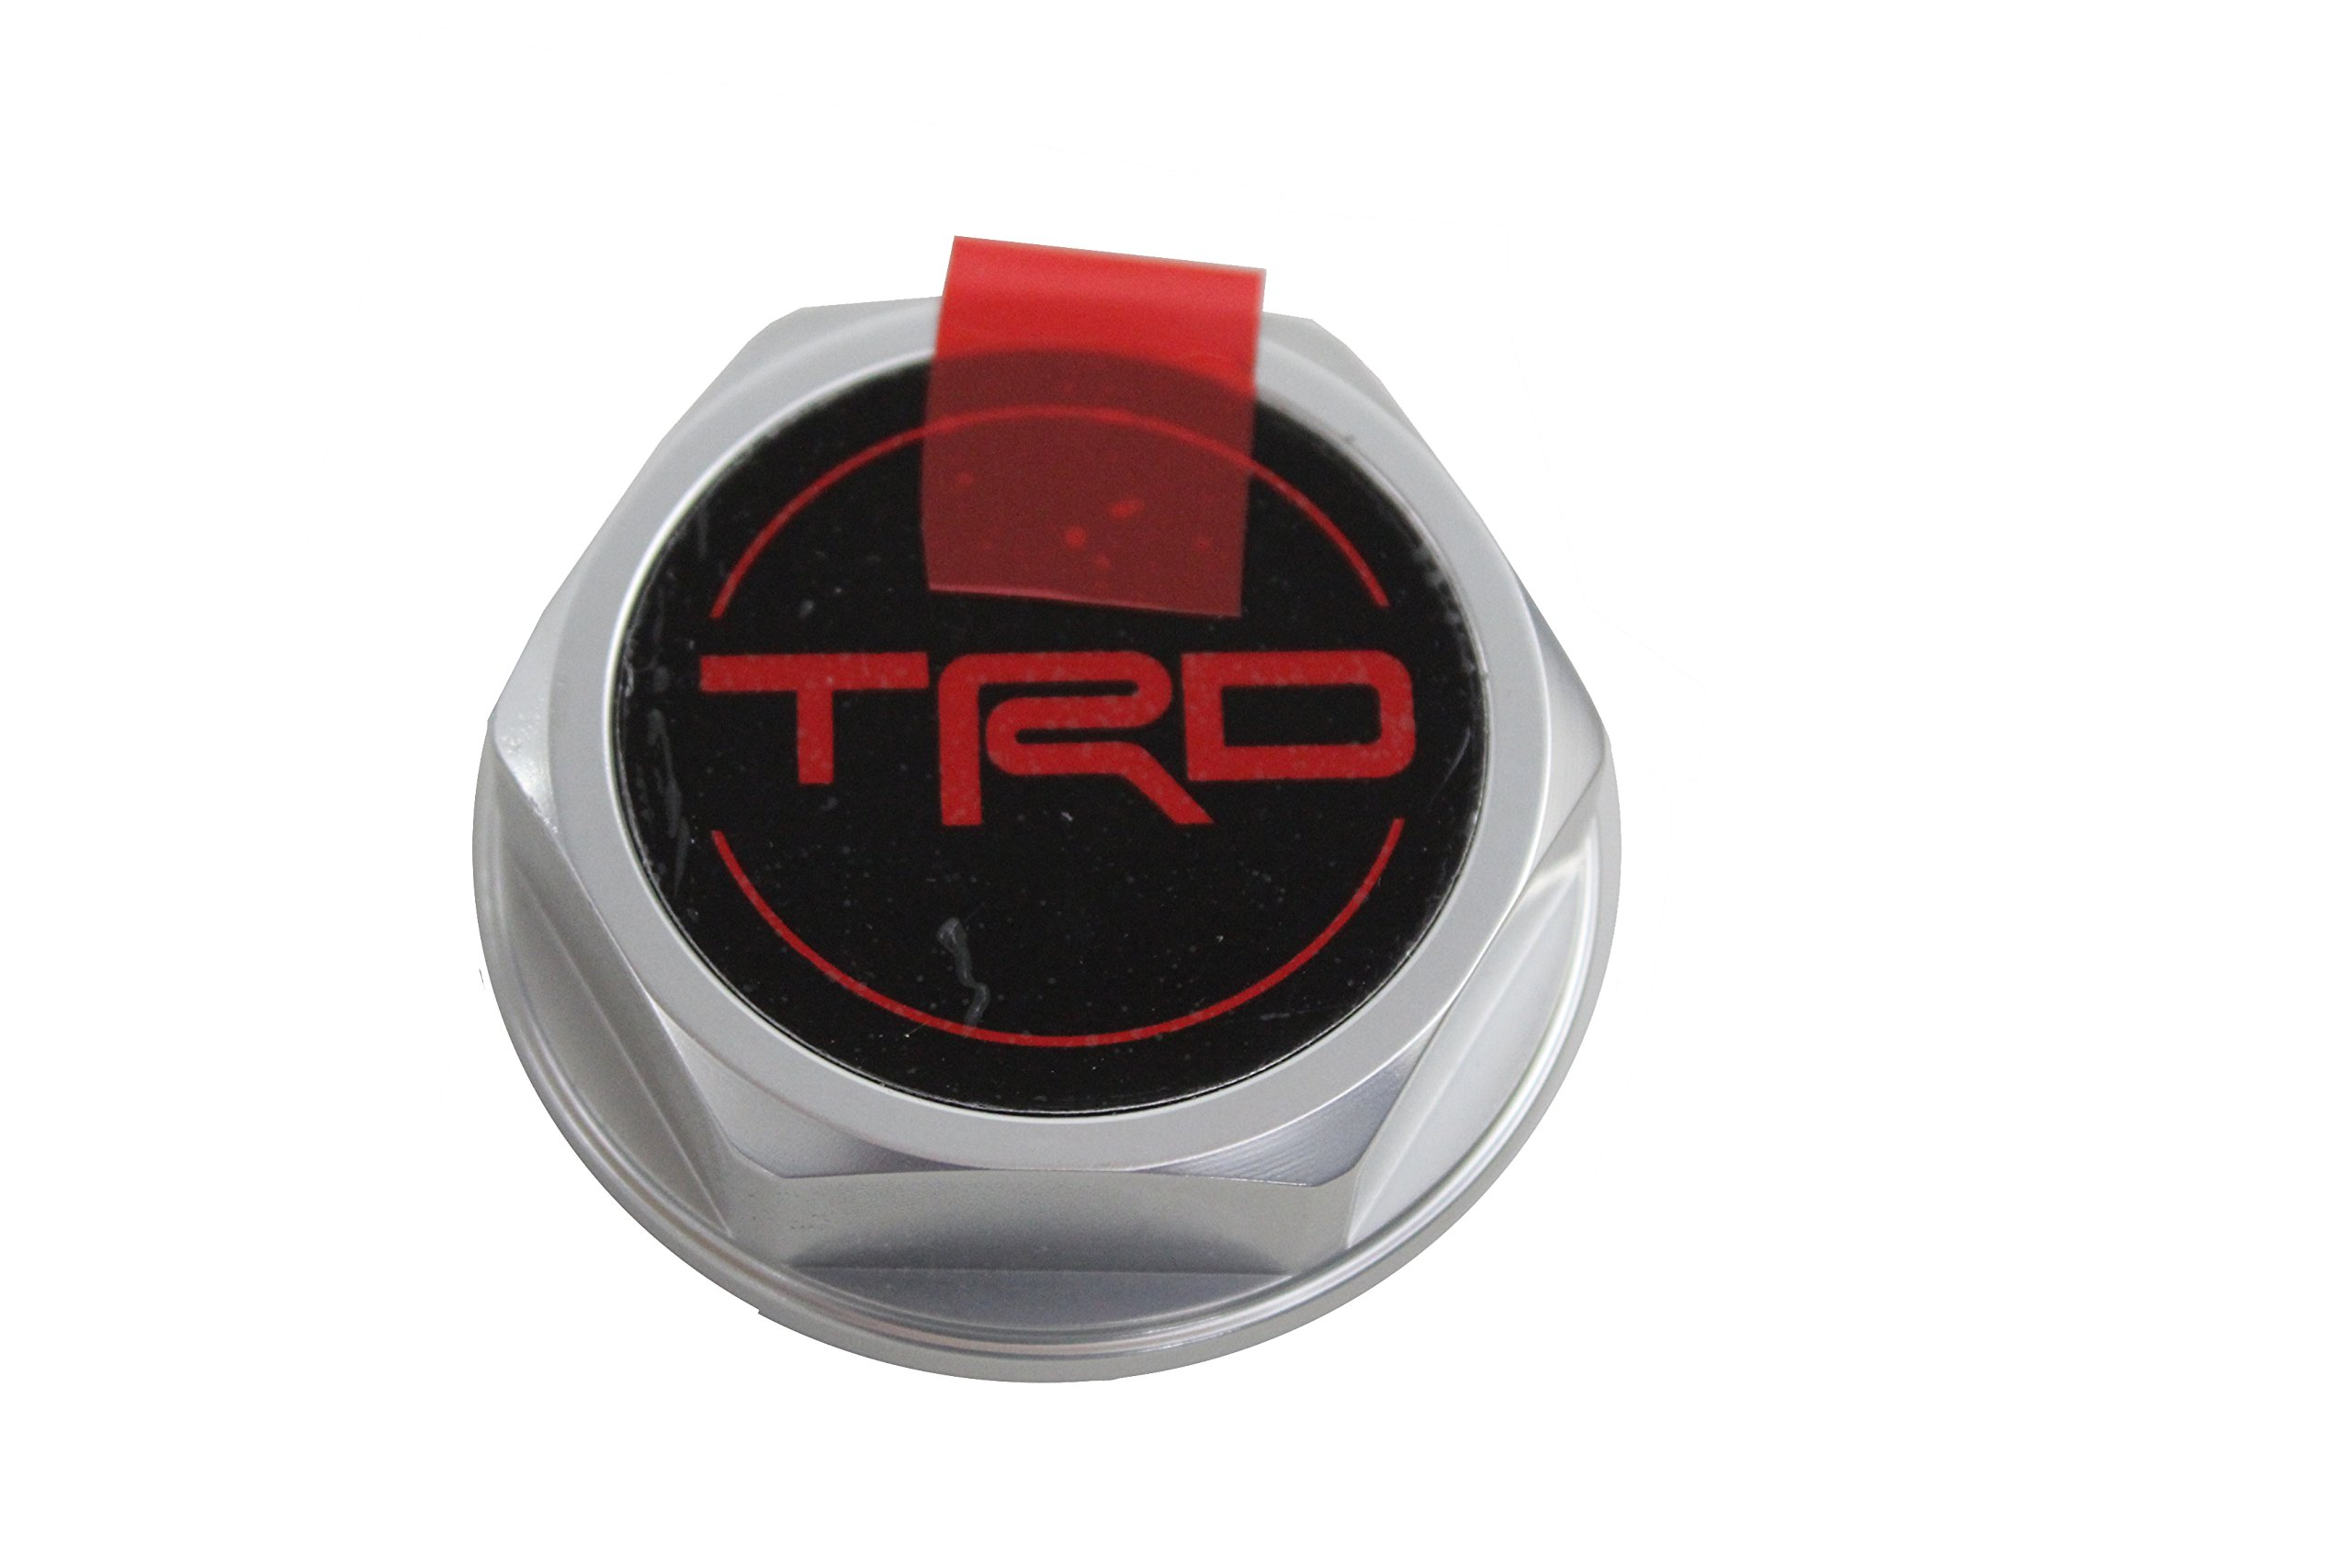 Genuine Toyota Accessories PTR35-00070 Forged Billet Aluminum TRD Oil Cap by Toyota